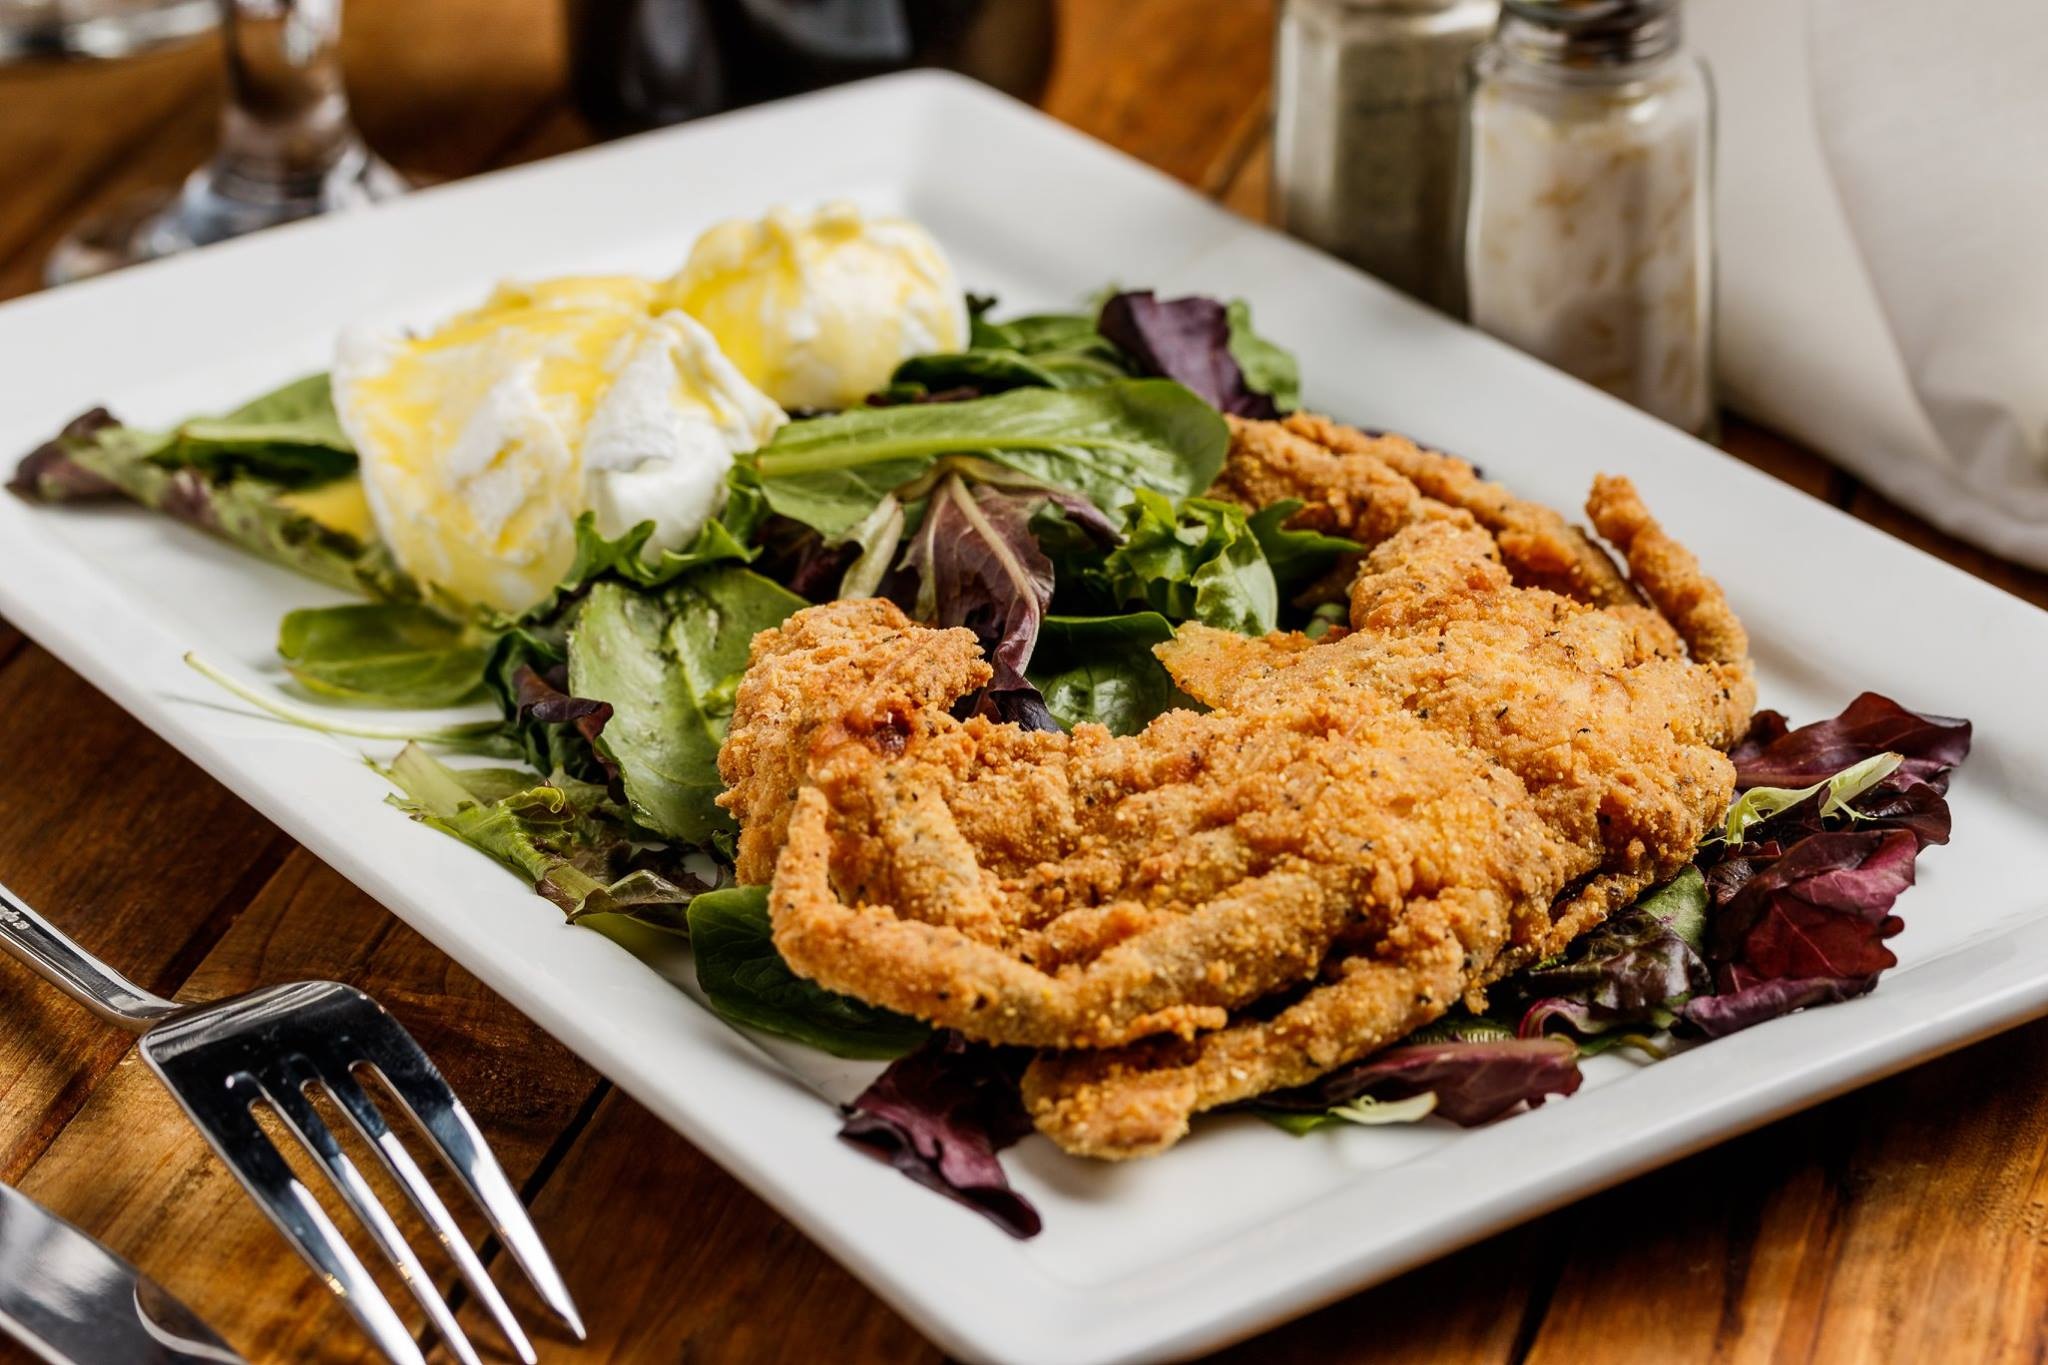 soft shell crab Beaumont TX, seafood restaurant Southeast Texas, Beaumont restaurant reviews